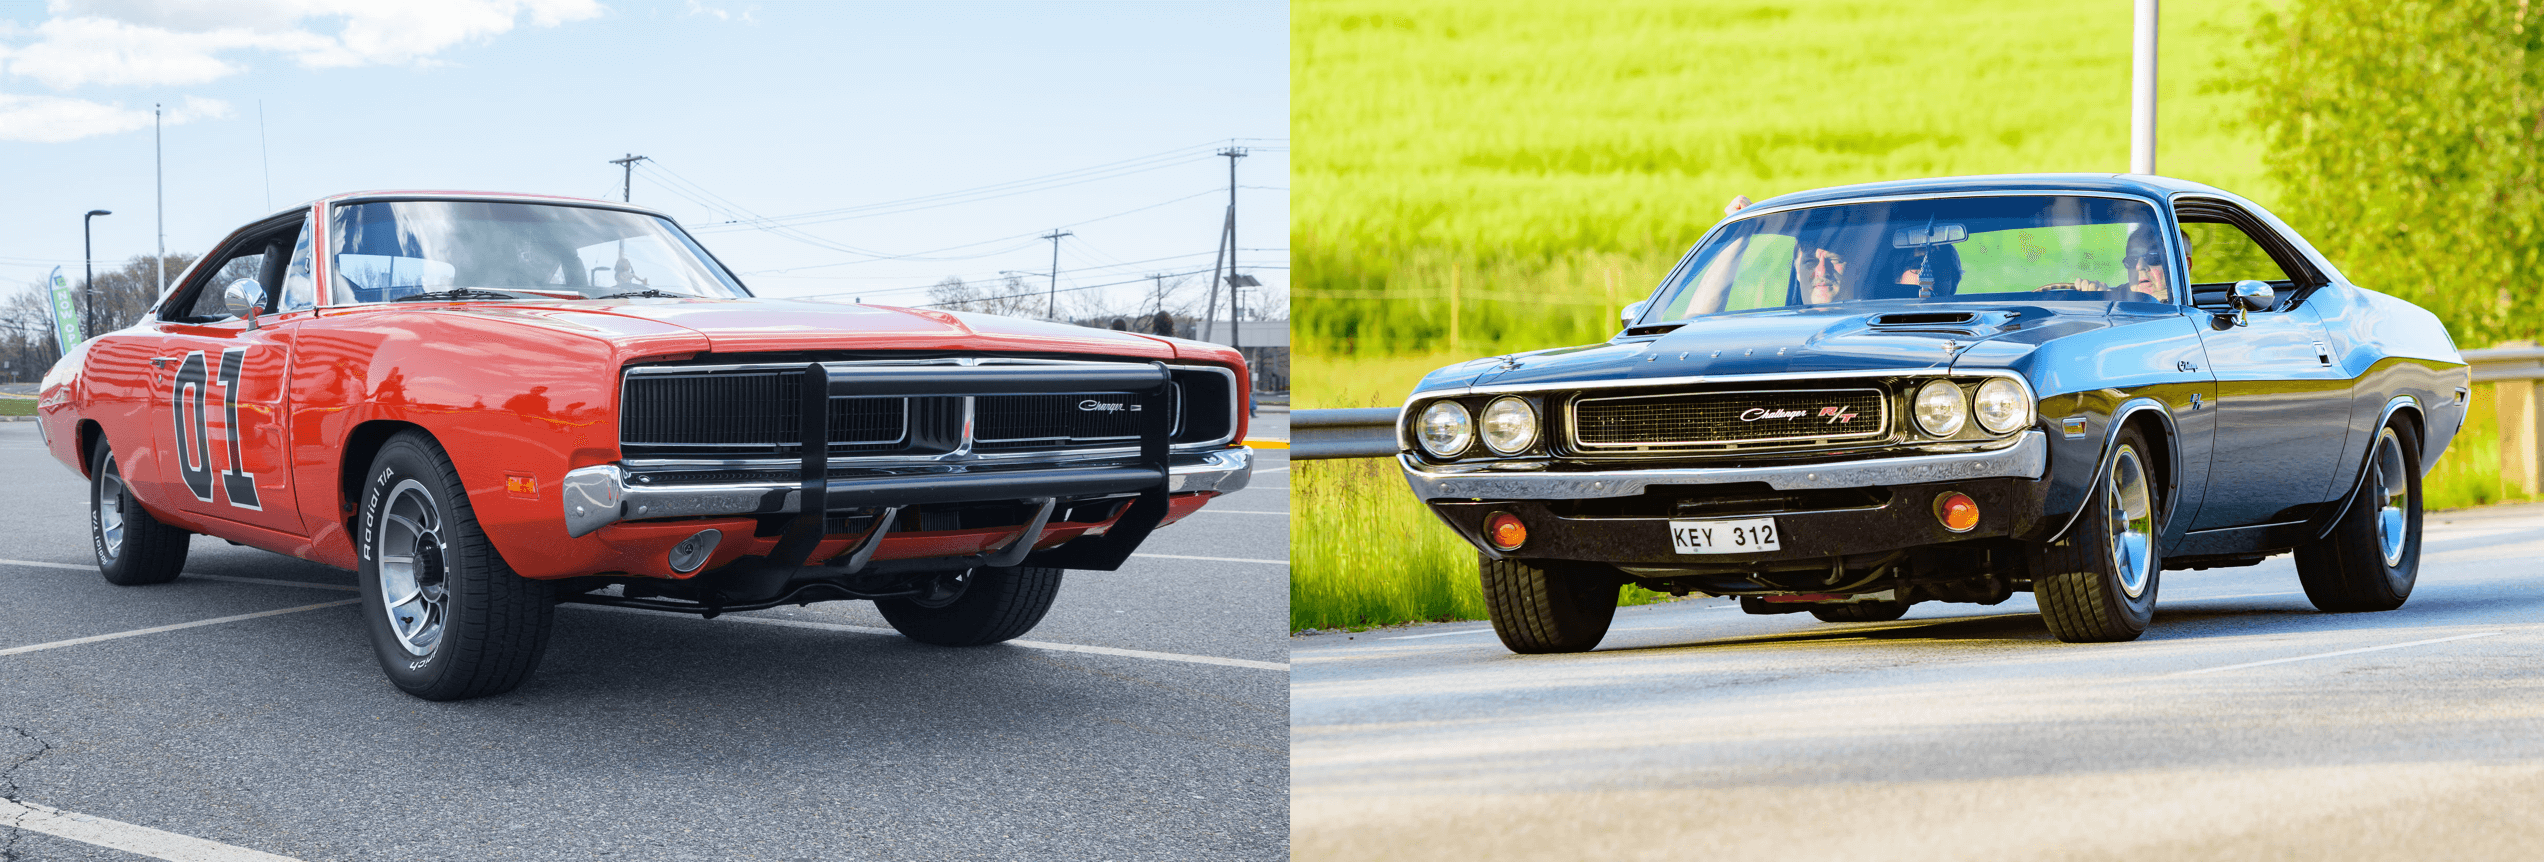 Challenger Vs Charger >> Charger Vs Challenger Which Classic Dodge Comes Out On Top